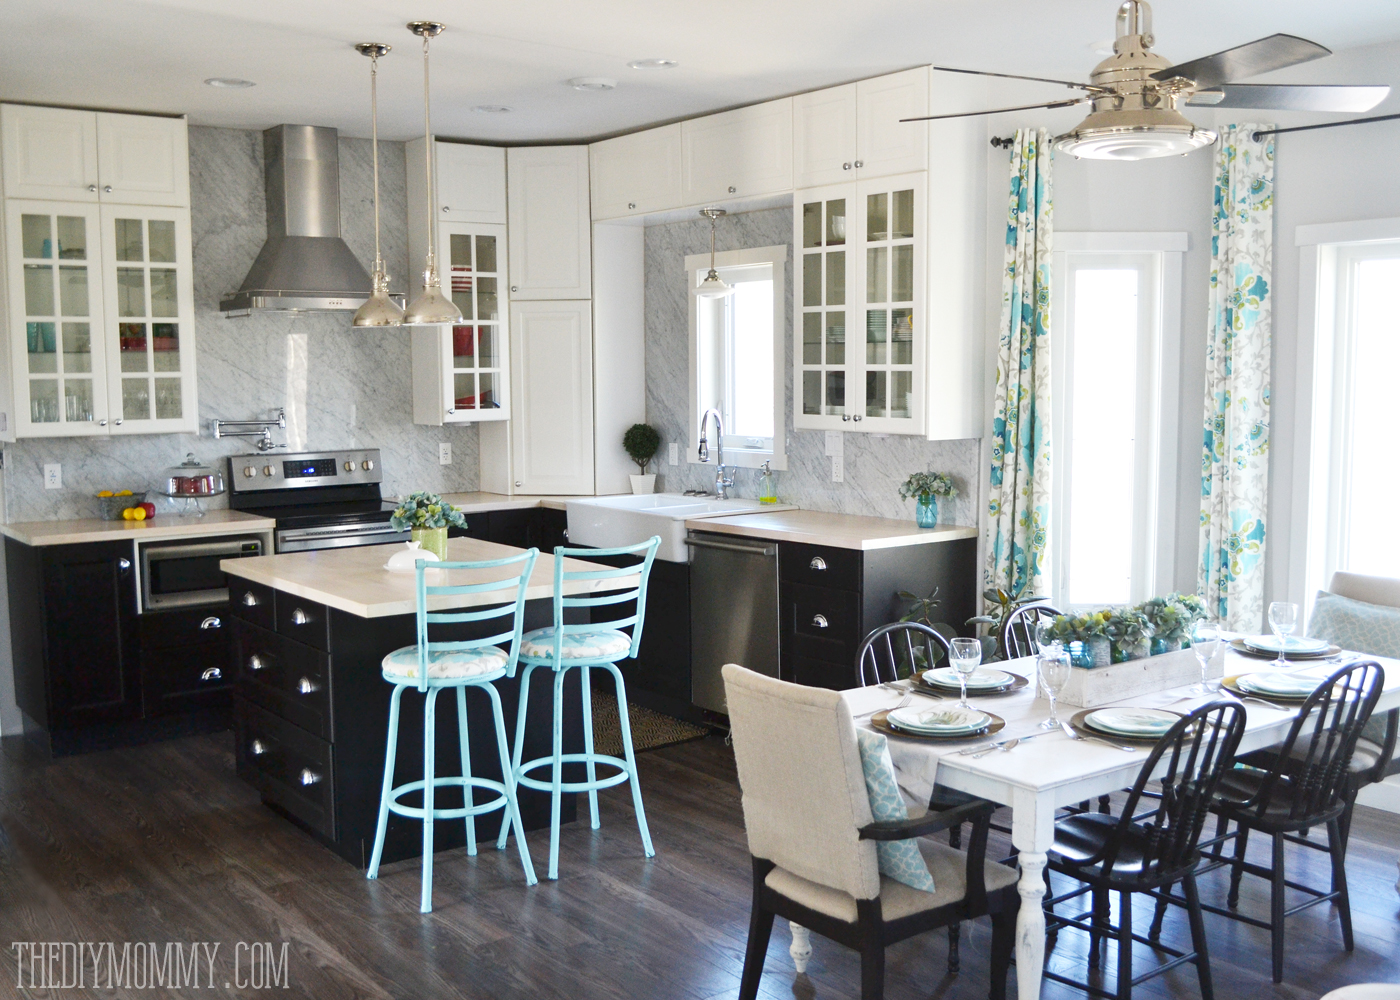 Our diy house 2015 home tour the diy mommy for Black industrial kitchen